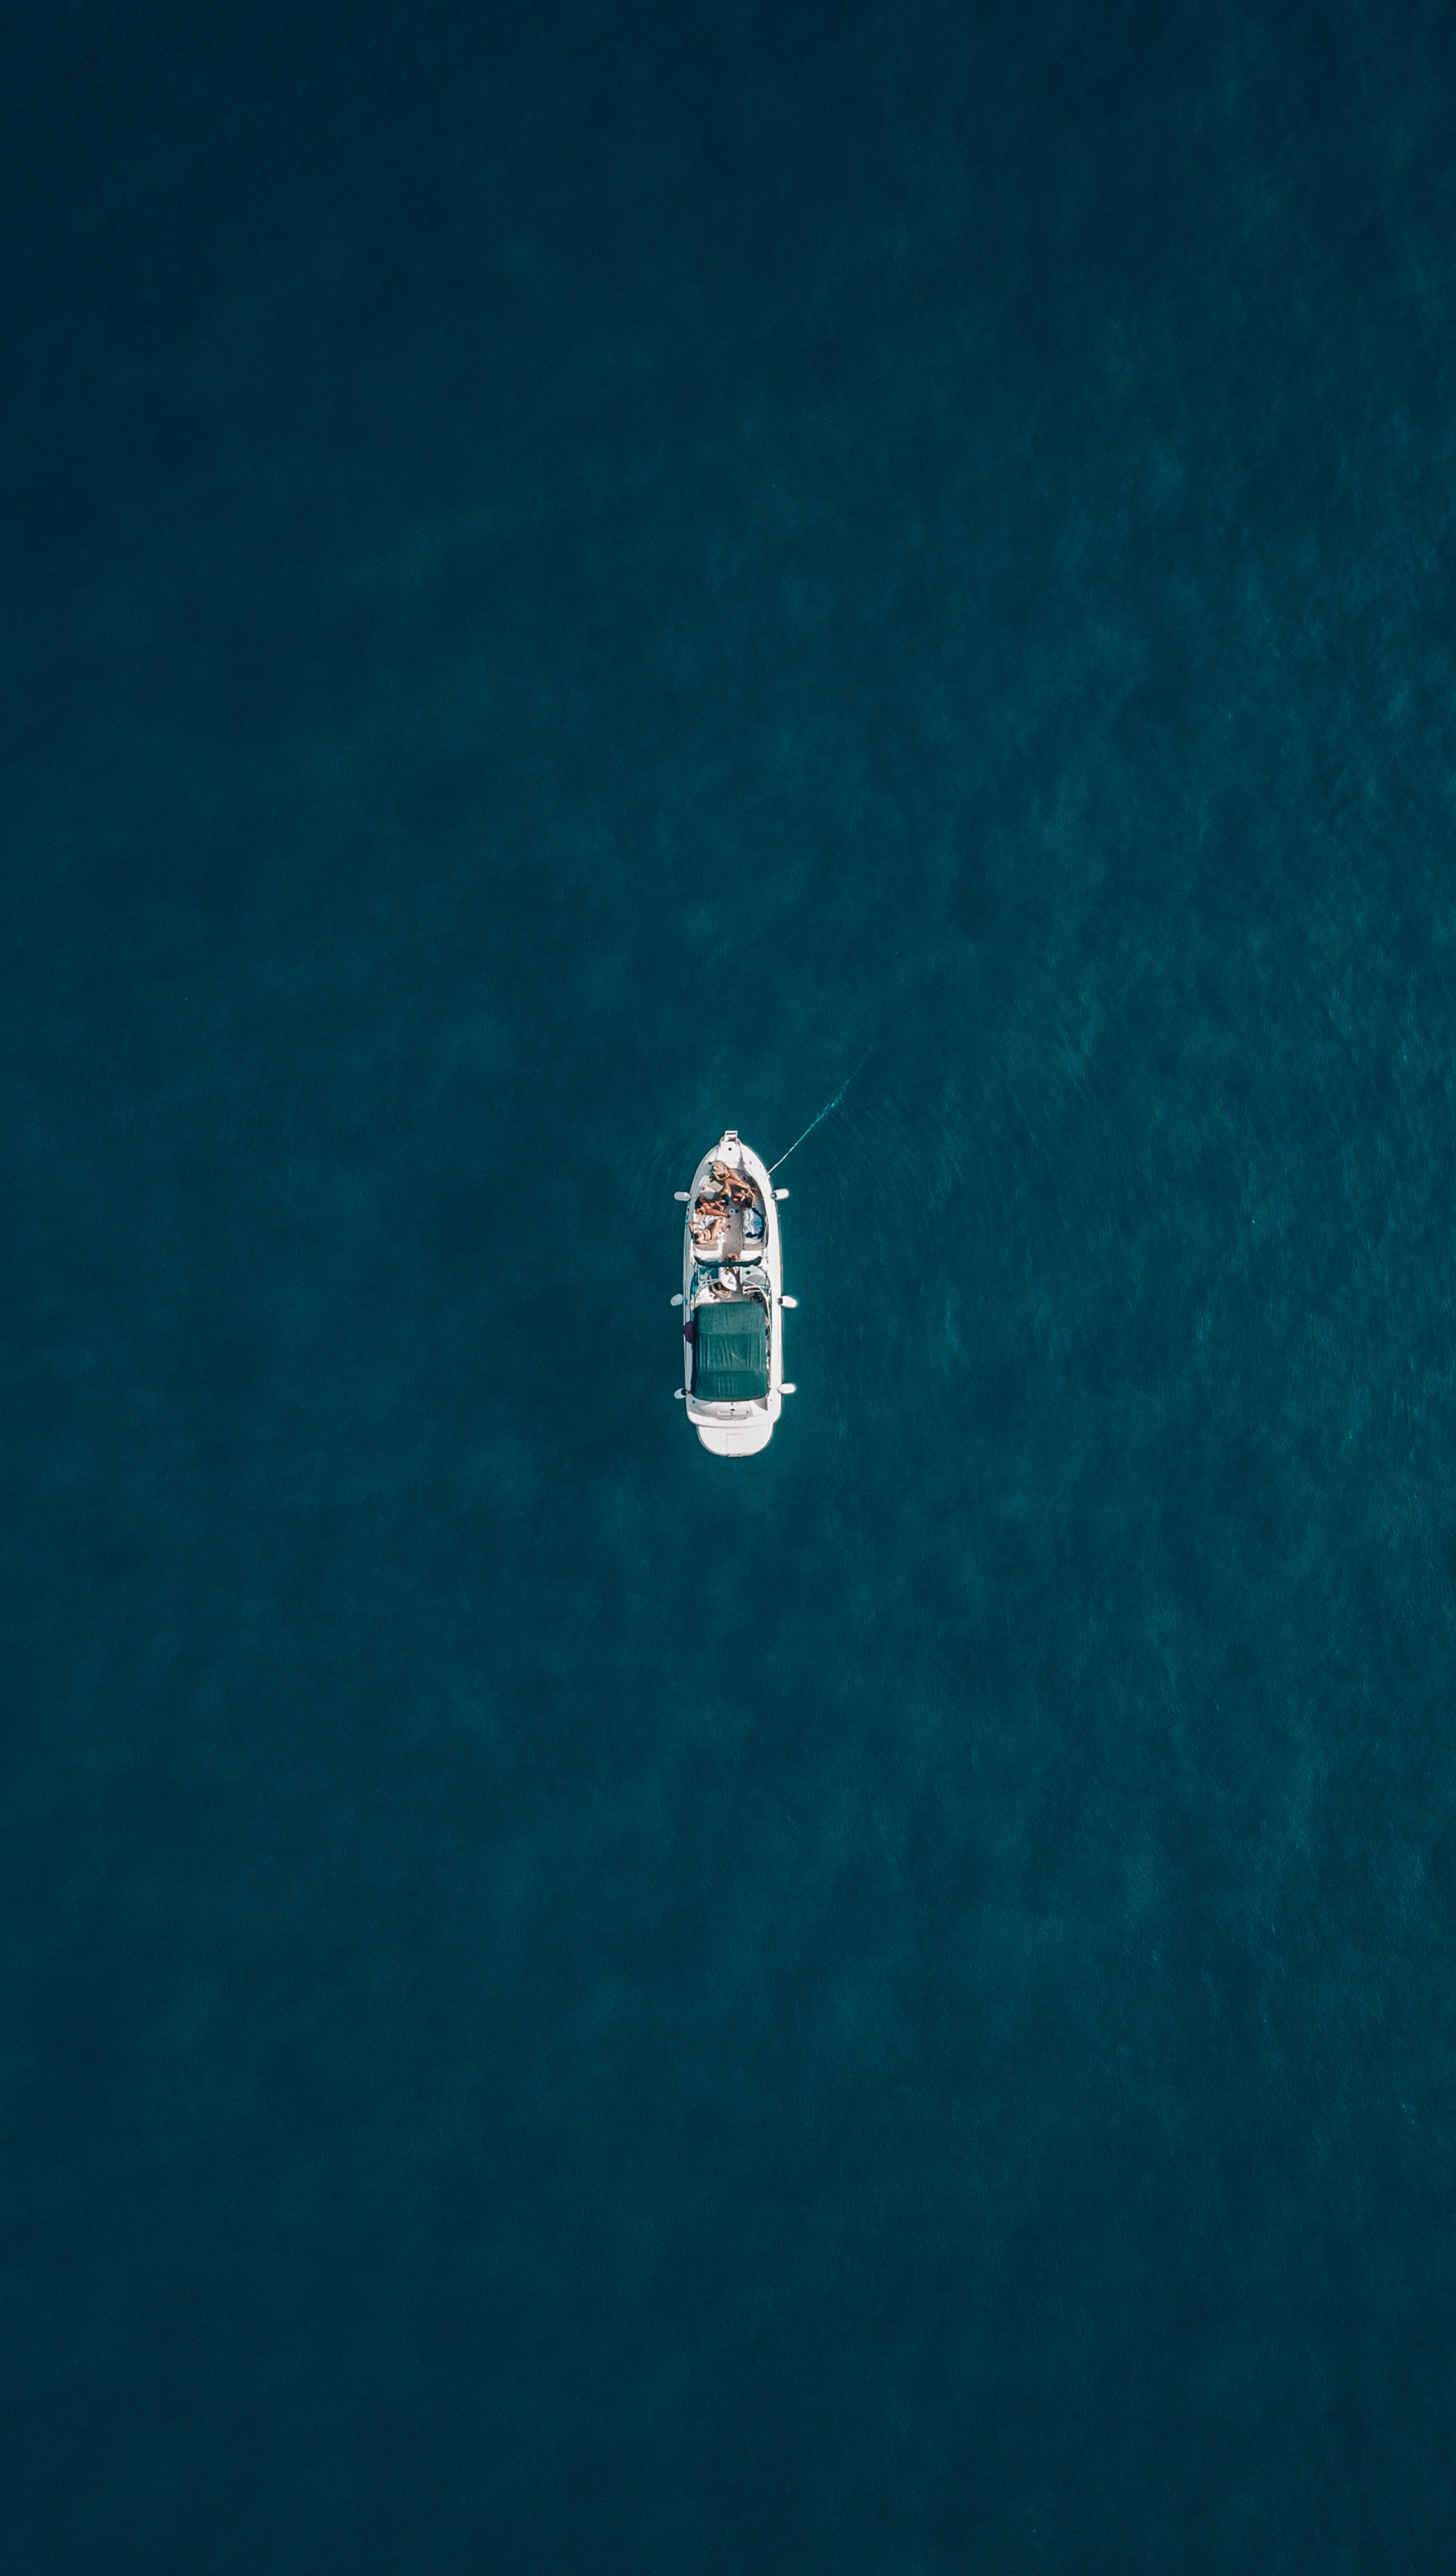 aerial photography of boat on water